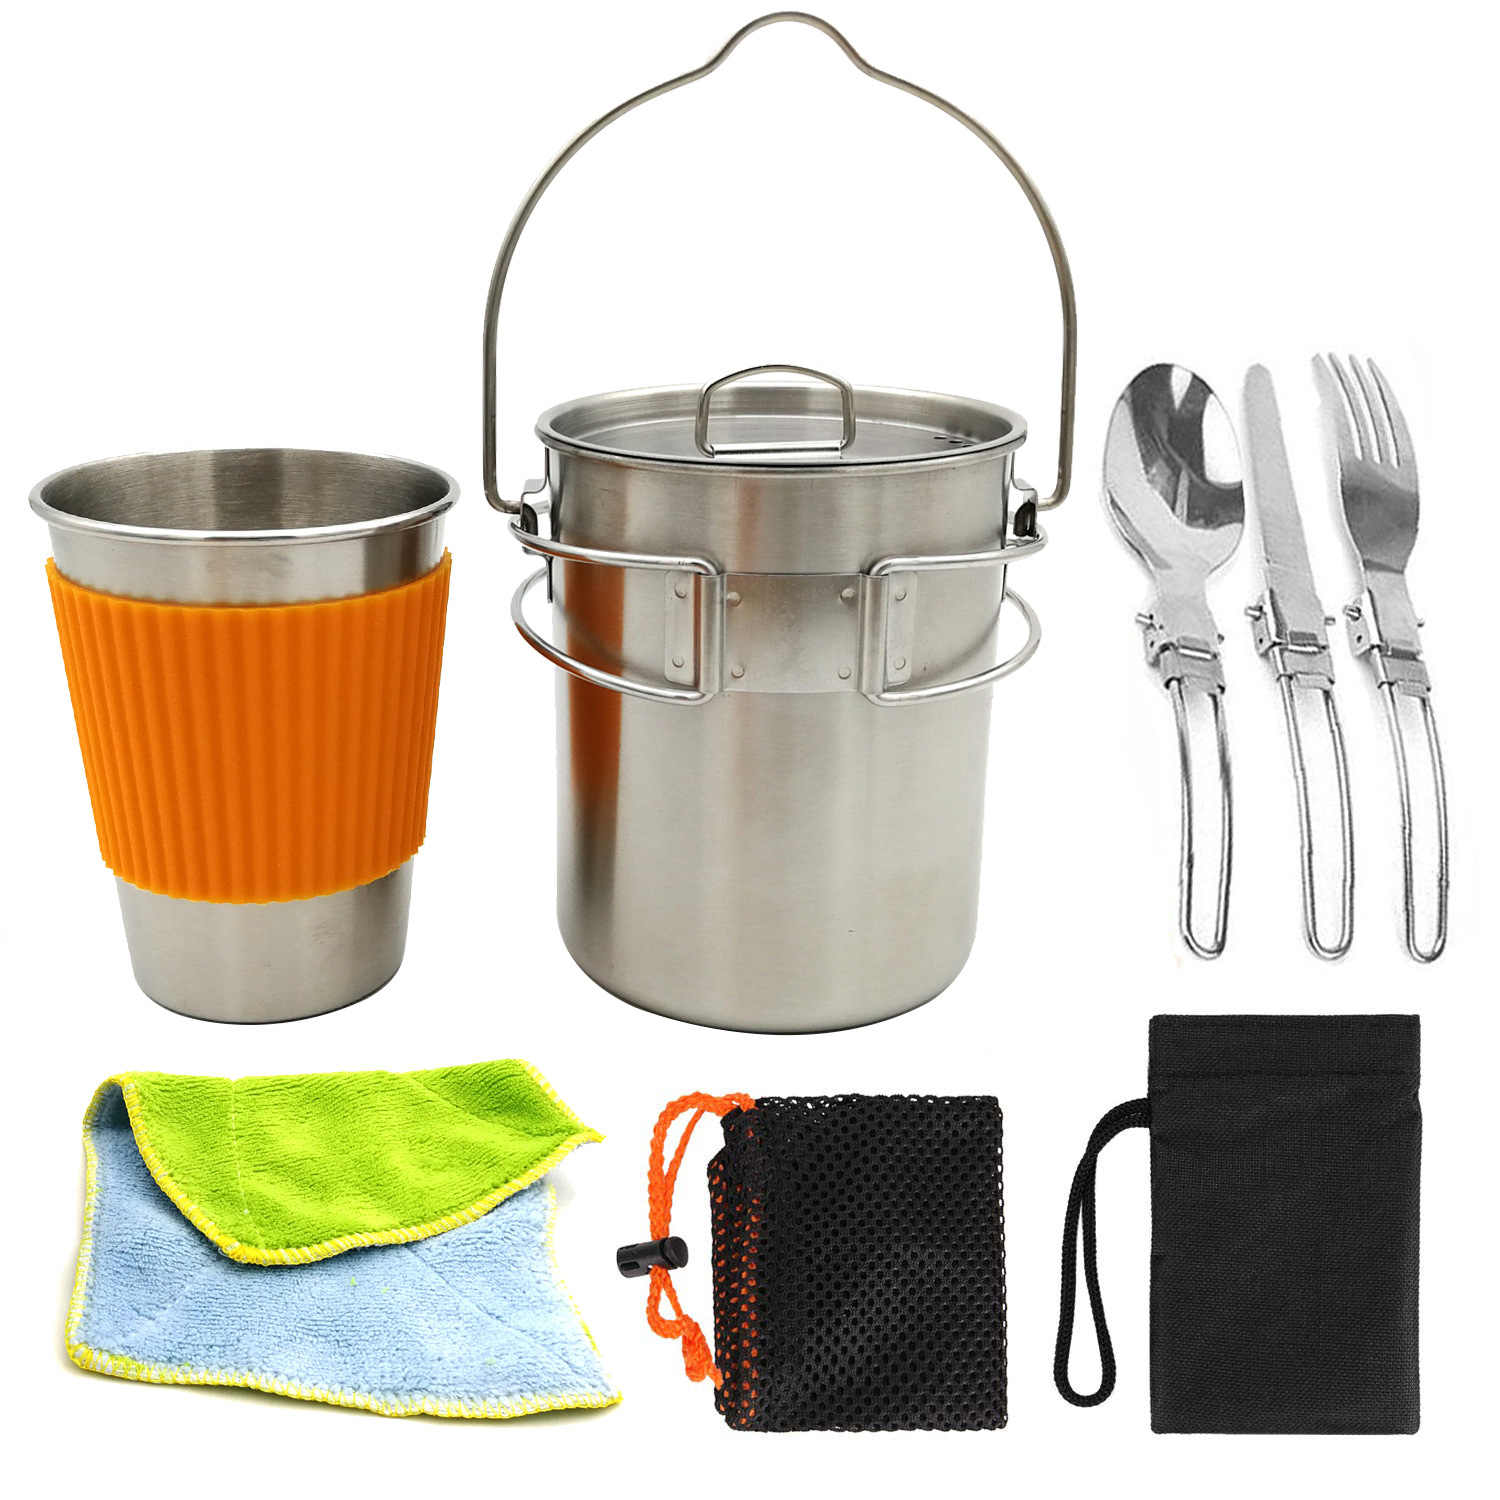 Stainless Steel Outdoor Camping Cookware Portable 304 Stainless Steel Hanging Cup Foldable Bushcraft Cooking Equipment Set Outdoor Tablewares Aliexpress